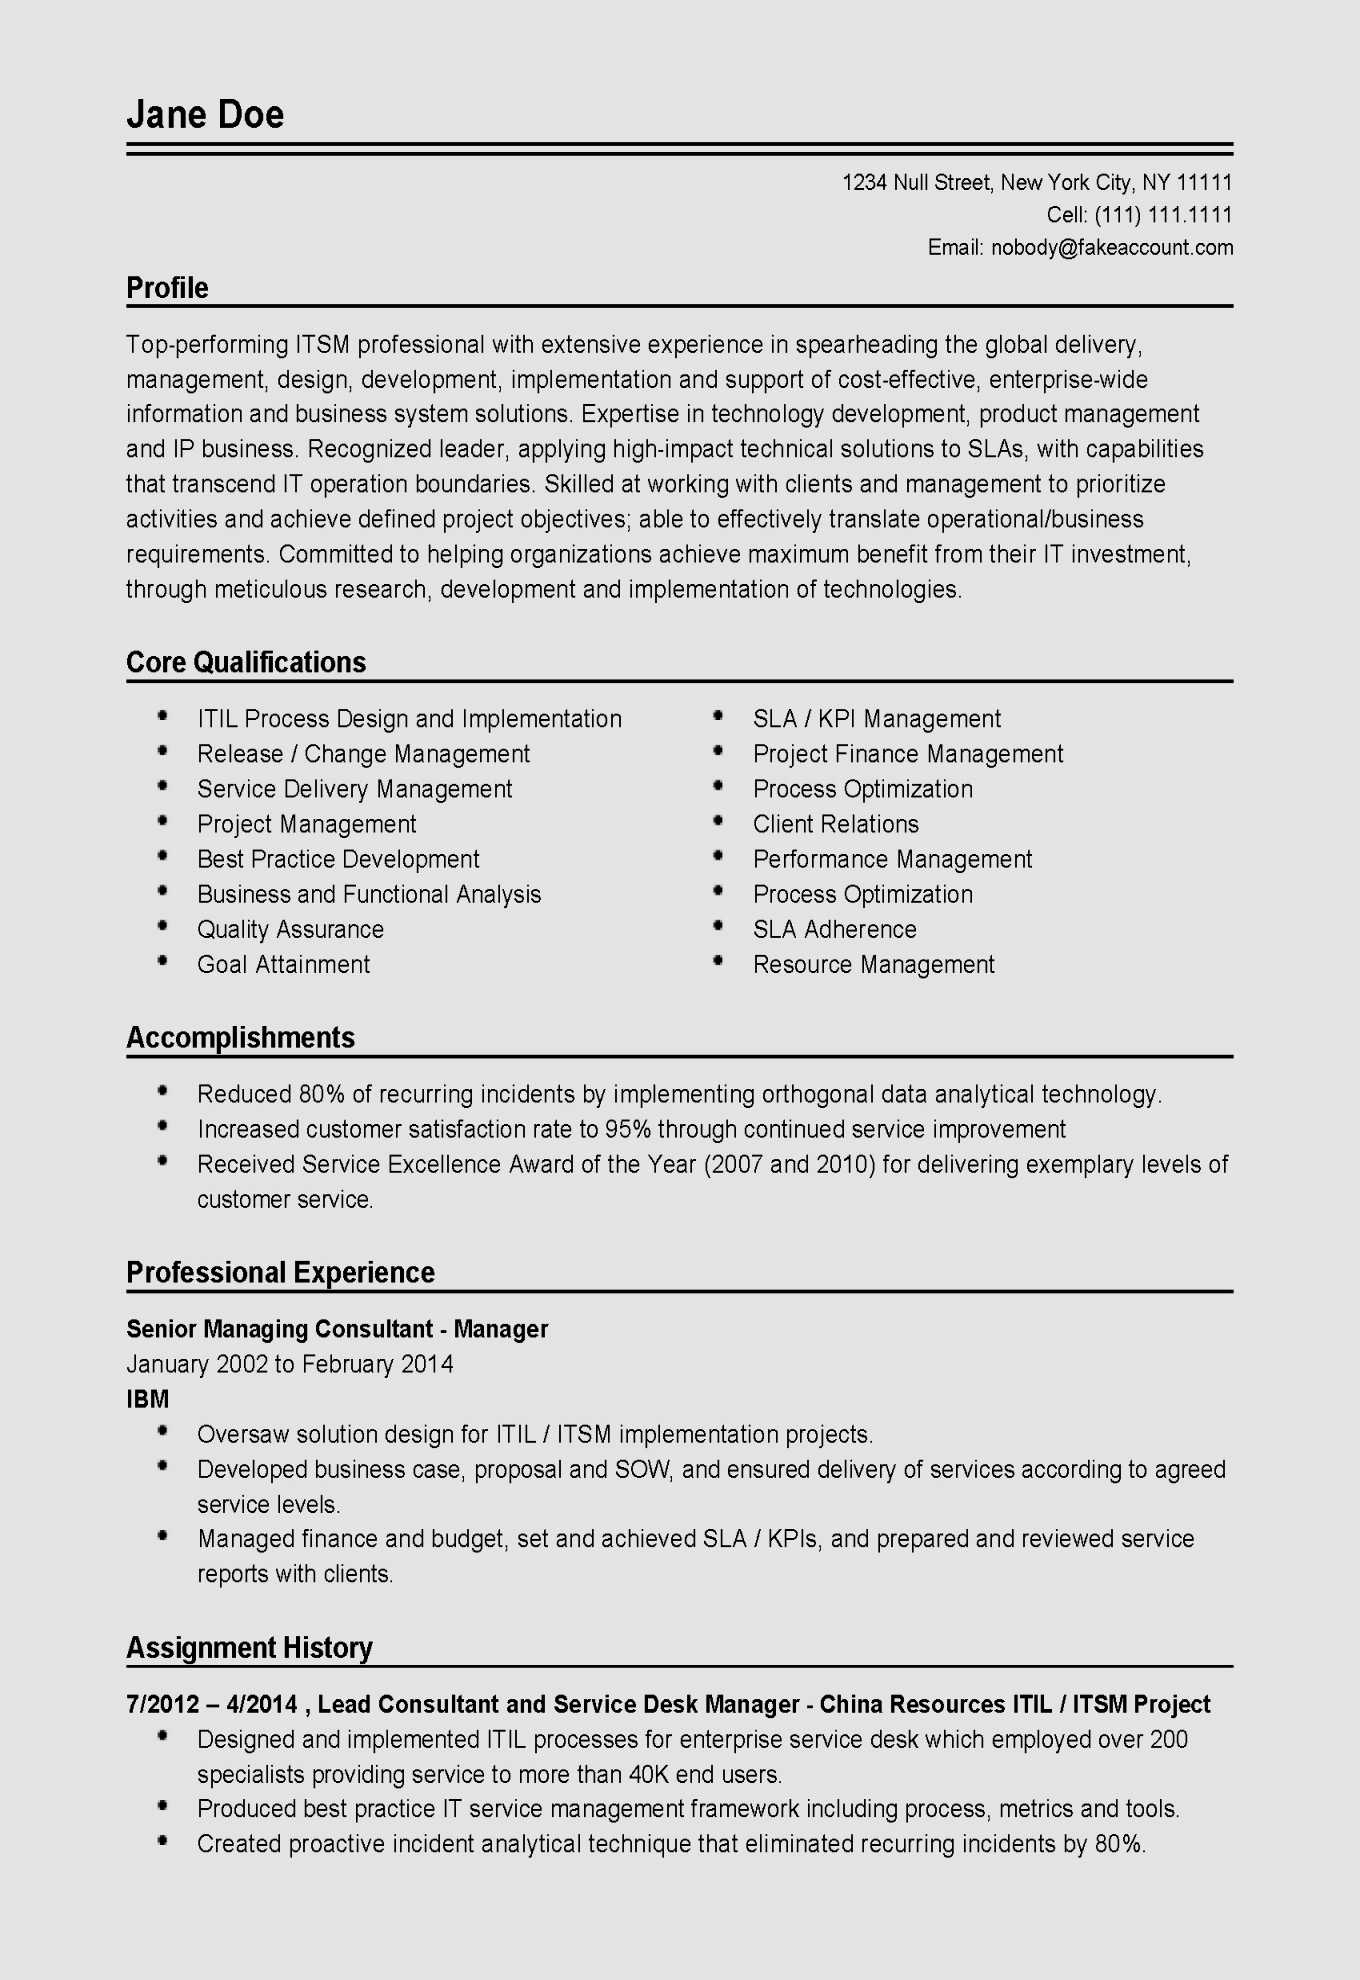 Consulting Resume Template - 18 top Professionals Resume Template Modern Free Resume Templates